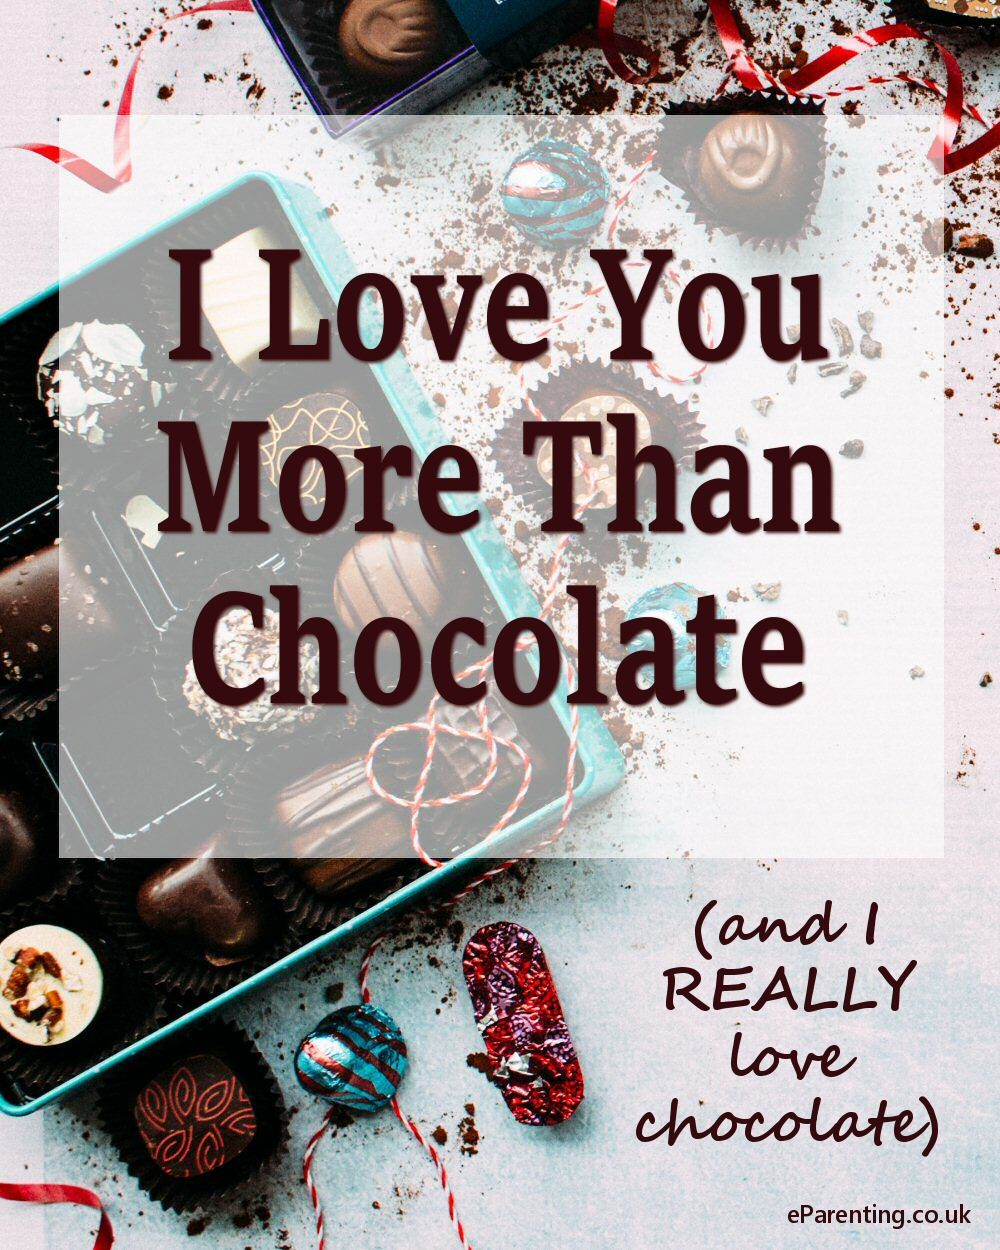 I Love You More Than Quotes I Love You More Than Chocolate And I Really Love Chocolate